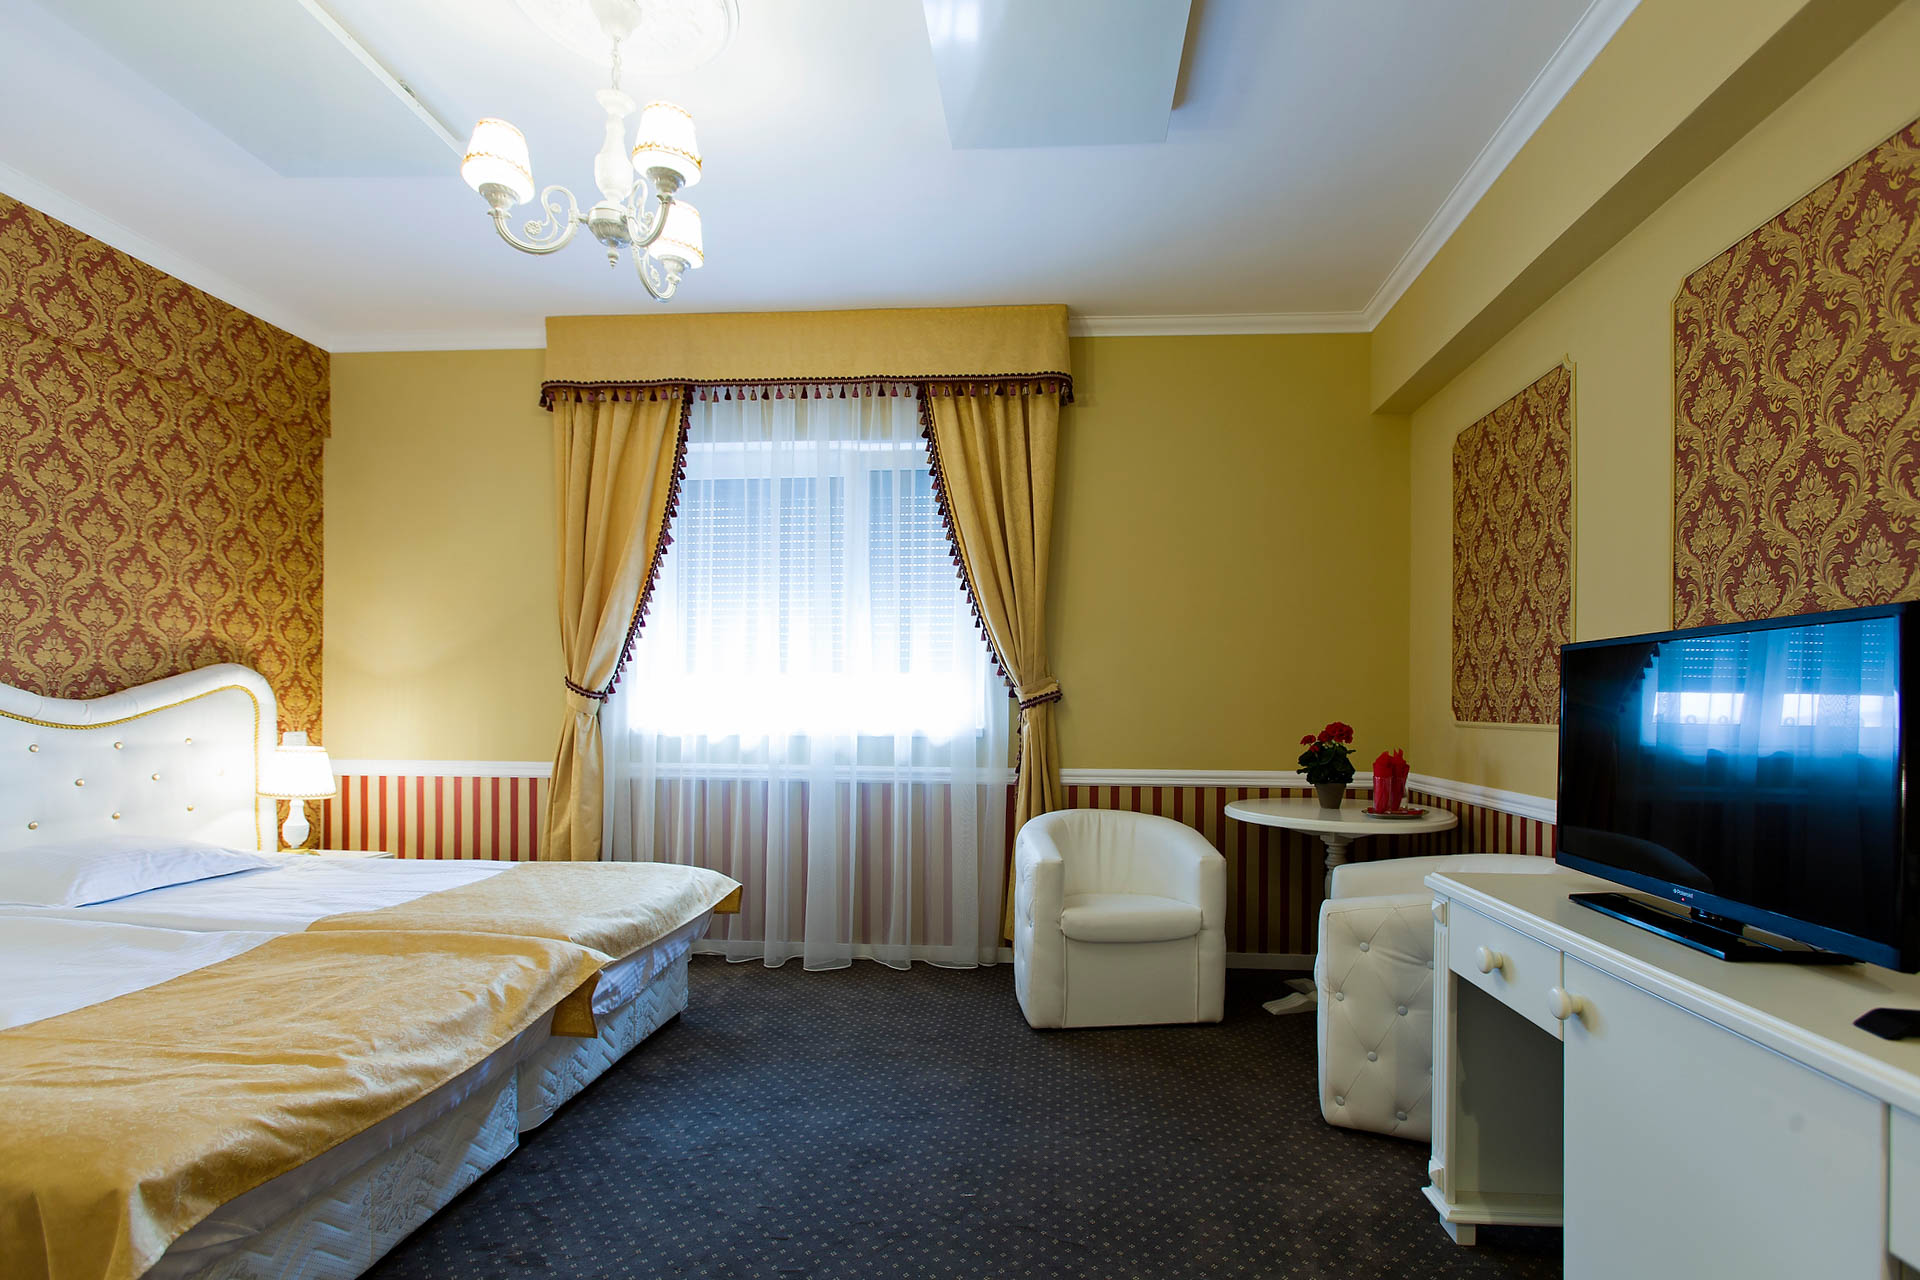 Accommodation Brasov - The Harghita Room